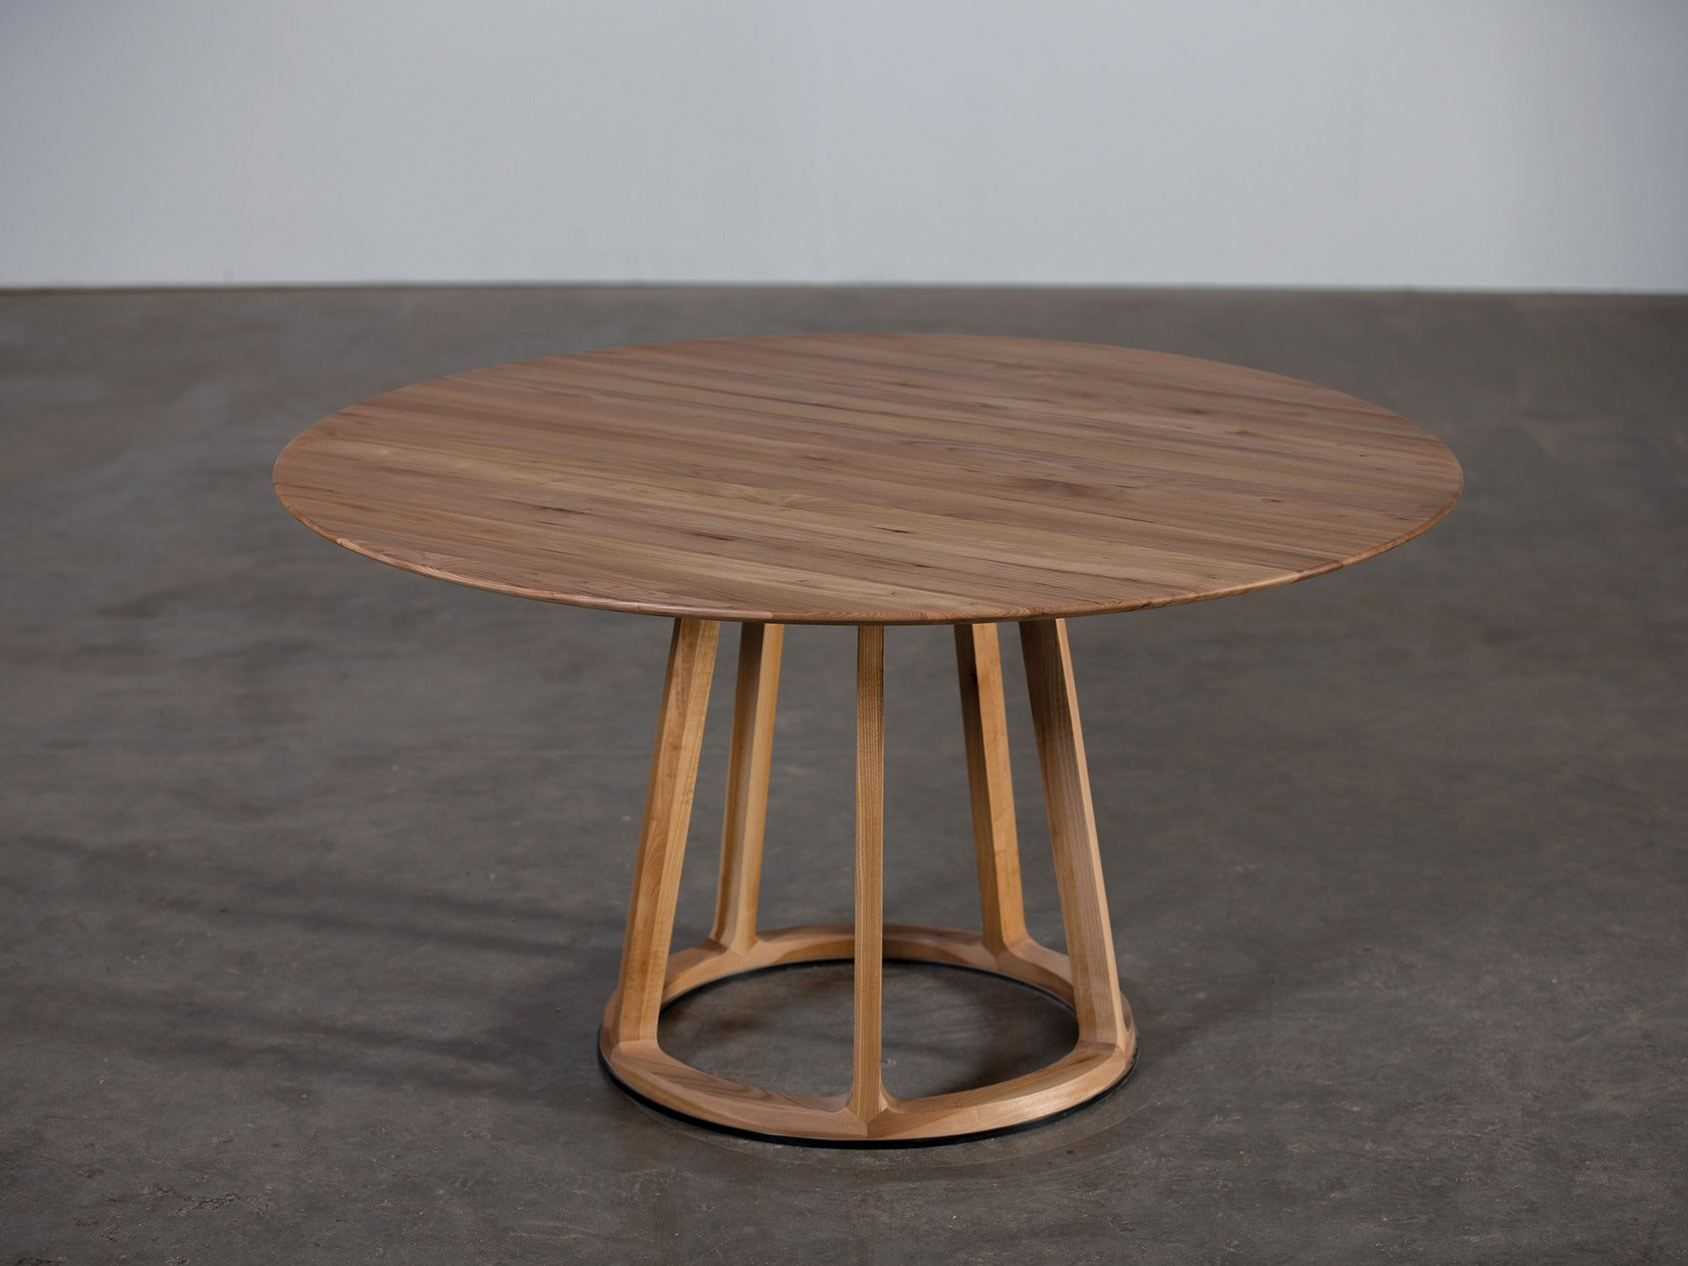 Round Wooden Table Pivot Pivot Collection By Artisan Design Michael Schneider Restaurant Tables Dining Table Round Dining Table